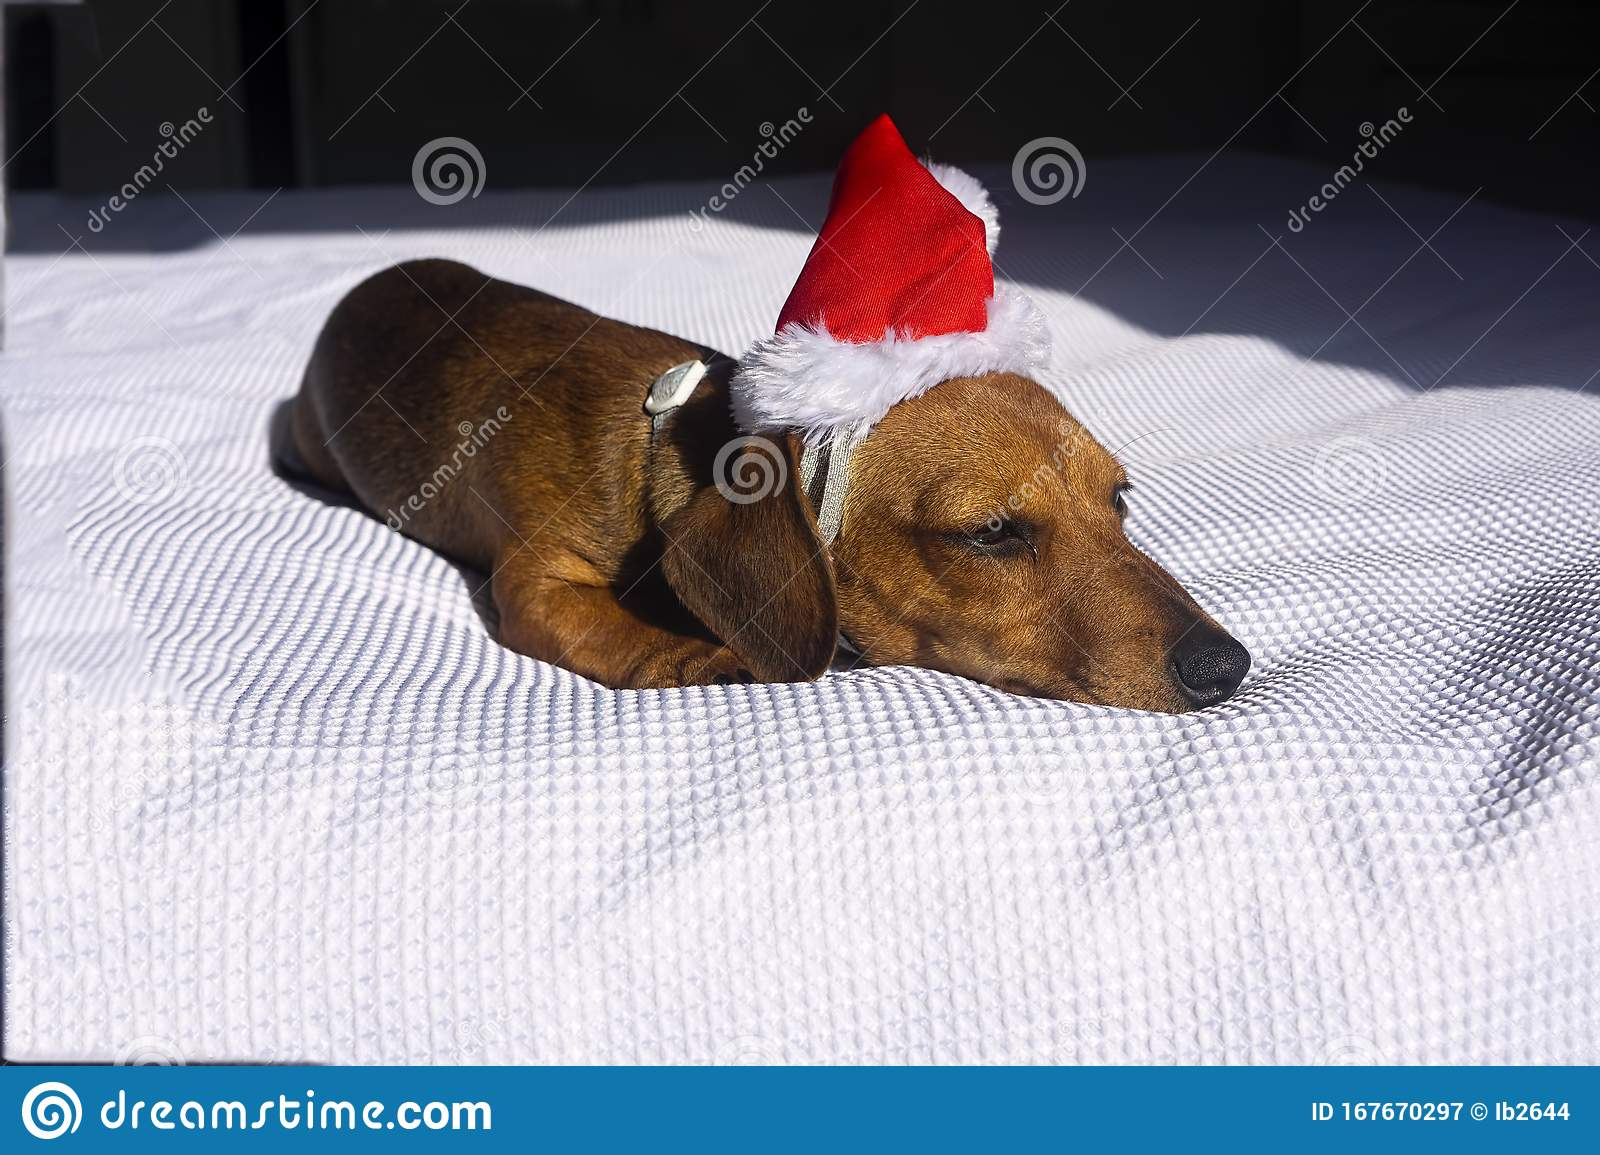 Cute Dachshund Puppy Snoozing On White Bed Stock Image Image Of Christmas Face 167670297